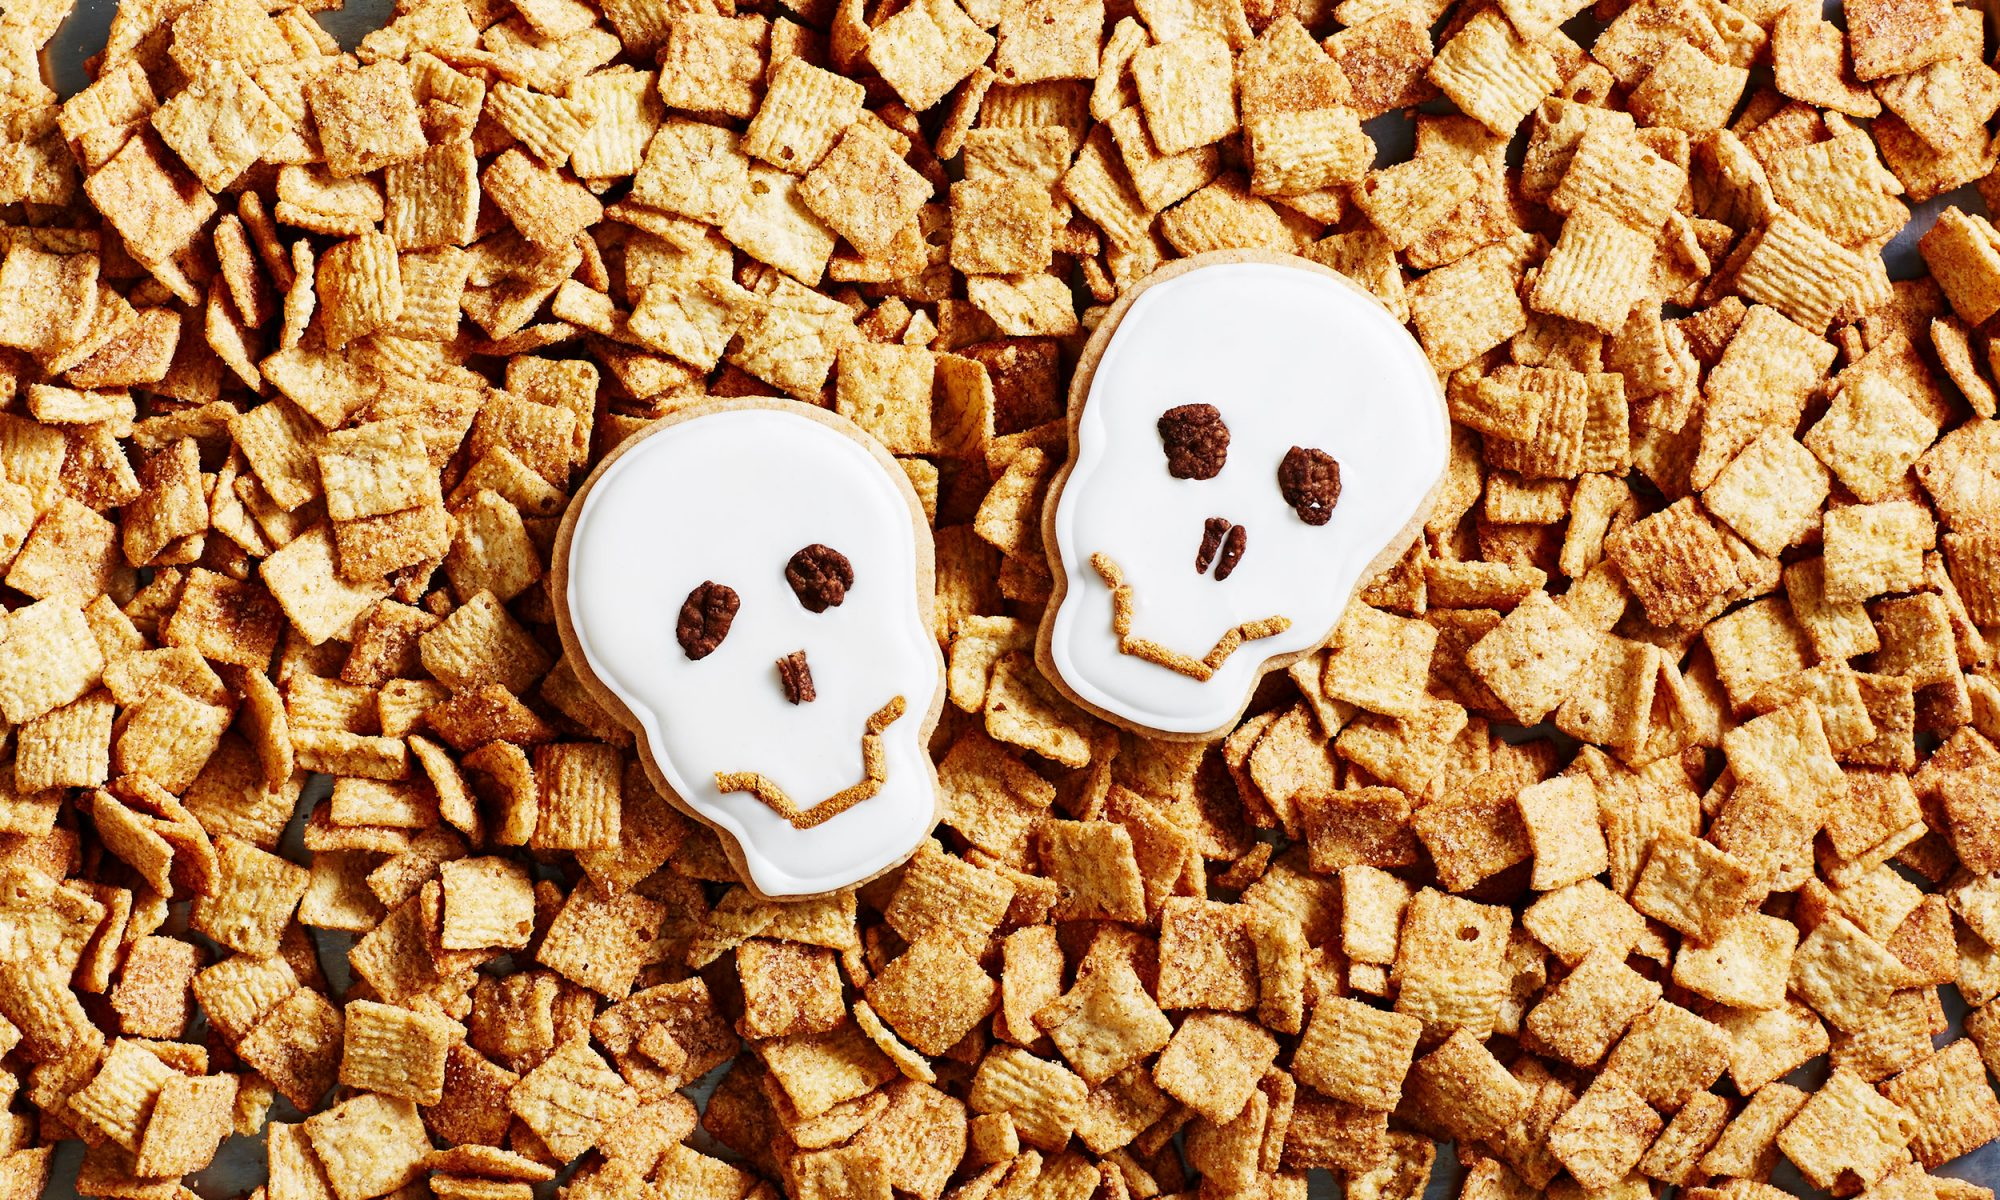 EC: These Skull Cookies Are Made of Cereal So You Can Eat Them for Breakfast